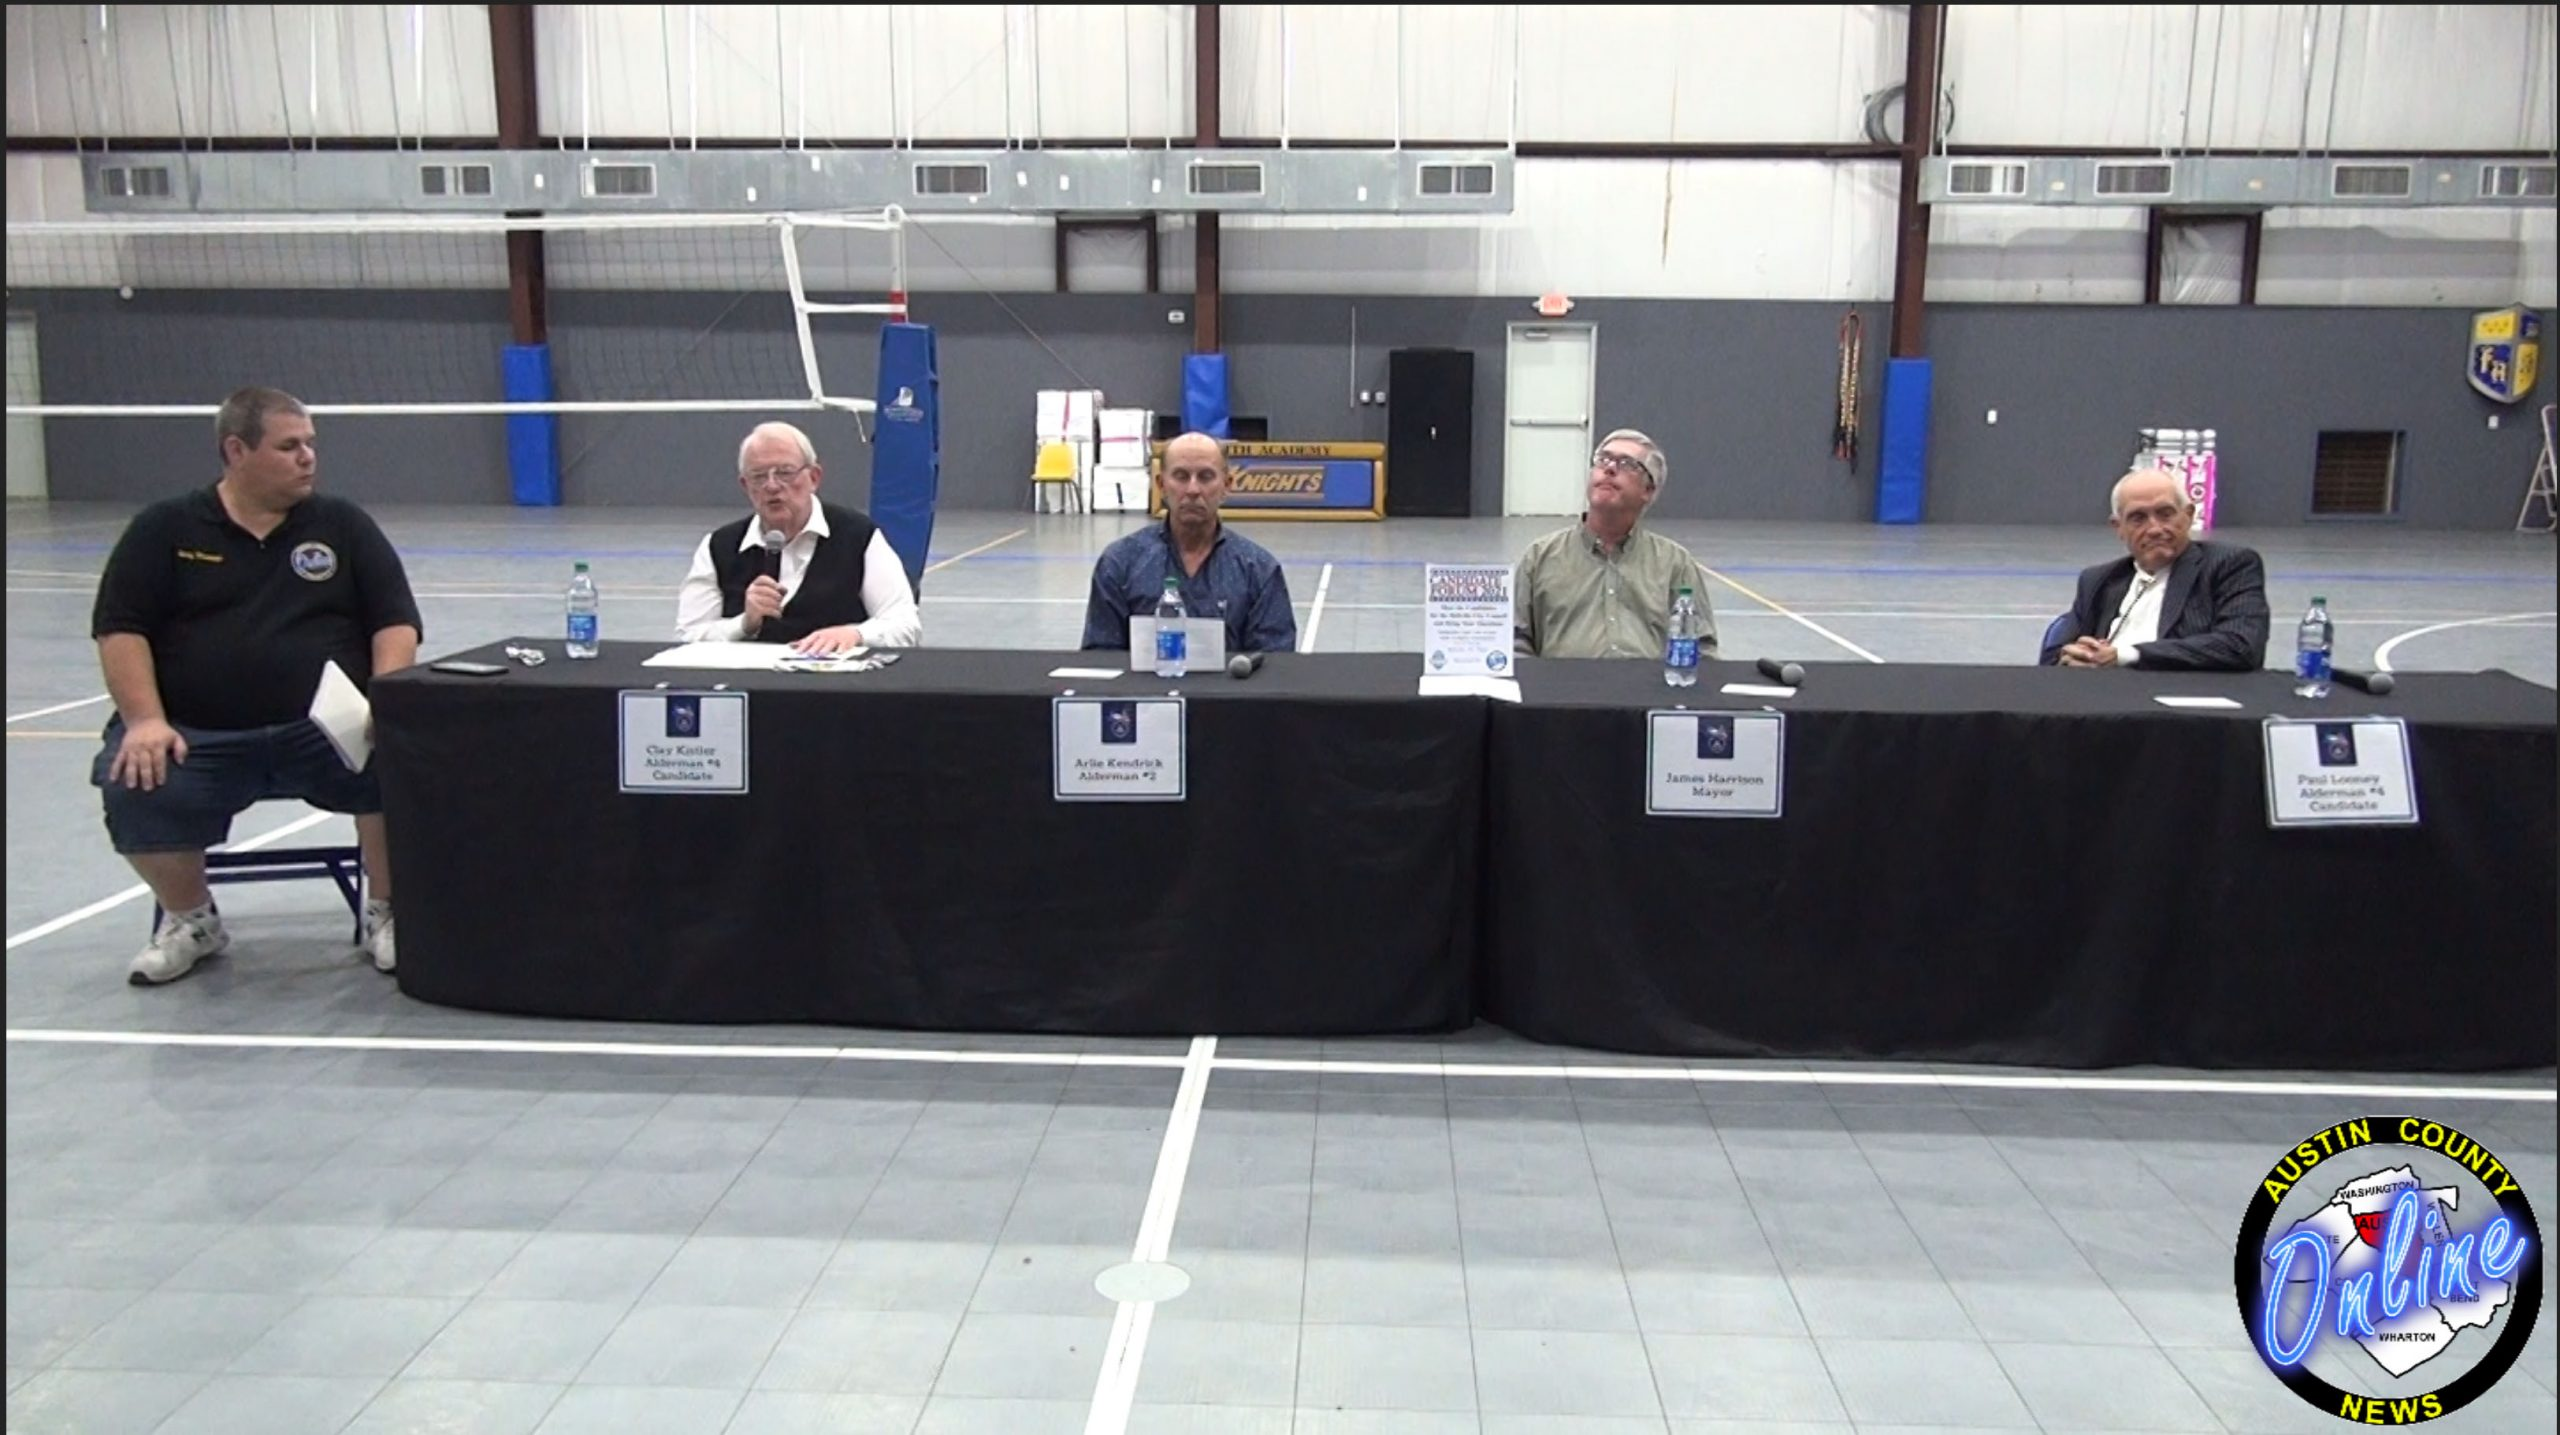 Bellville Chamber of Commerce Hosts City Council Candidate Forum